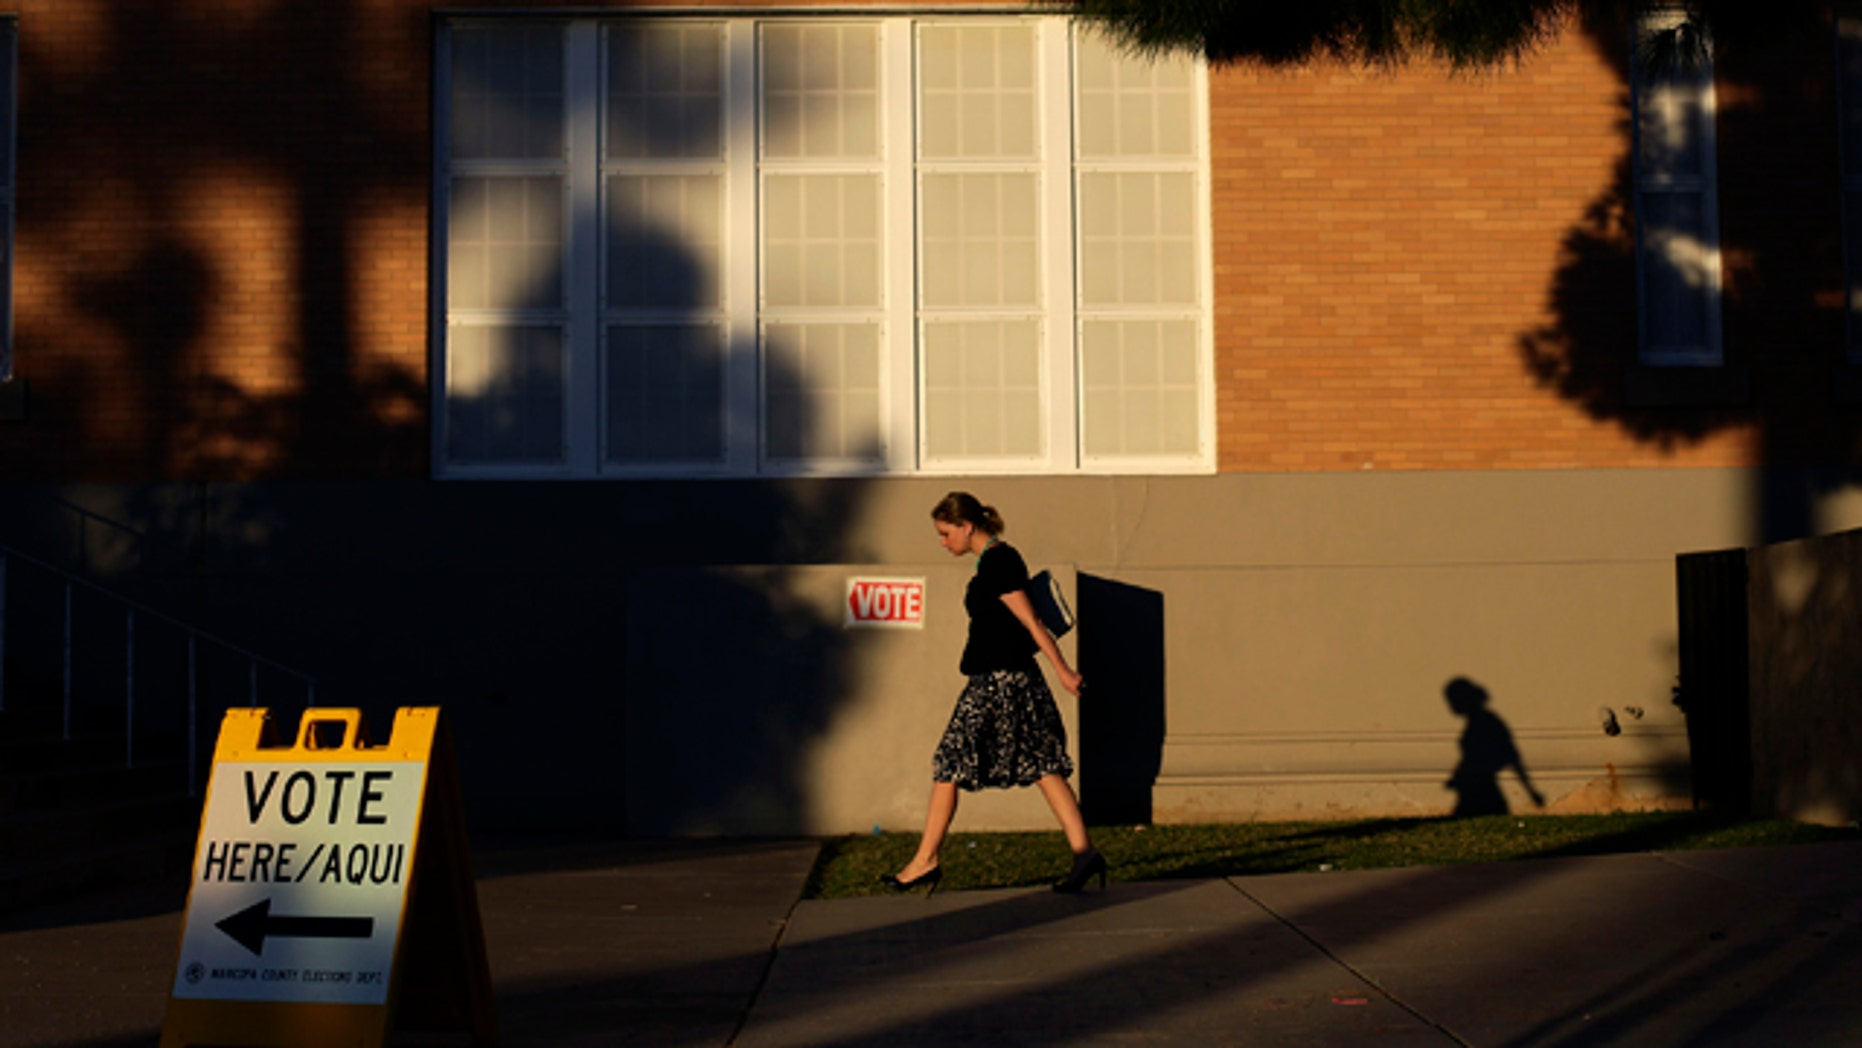 Nov. 6, 2012: A woman walks outside Kenilworth School as she prepares to vote during the U.S. presidential election in Phoenix, Arizona.